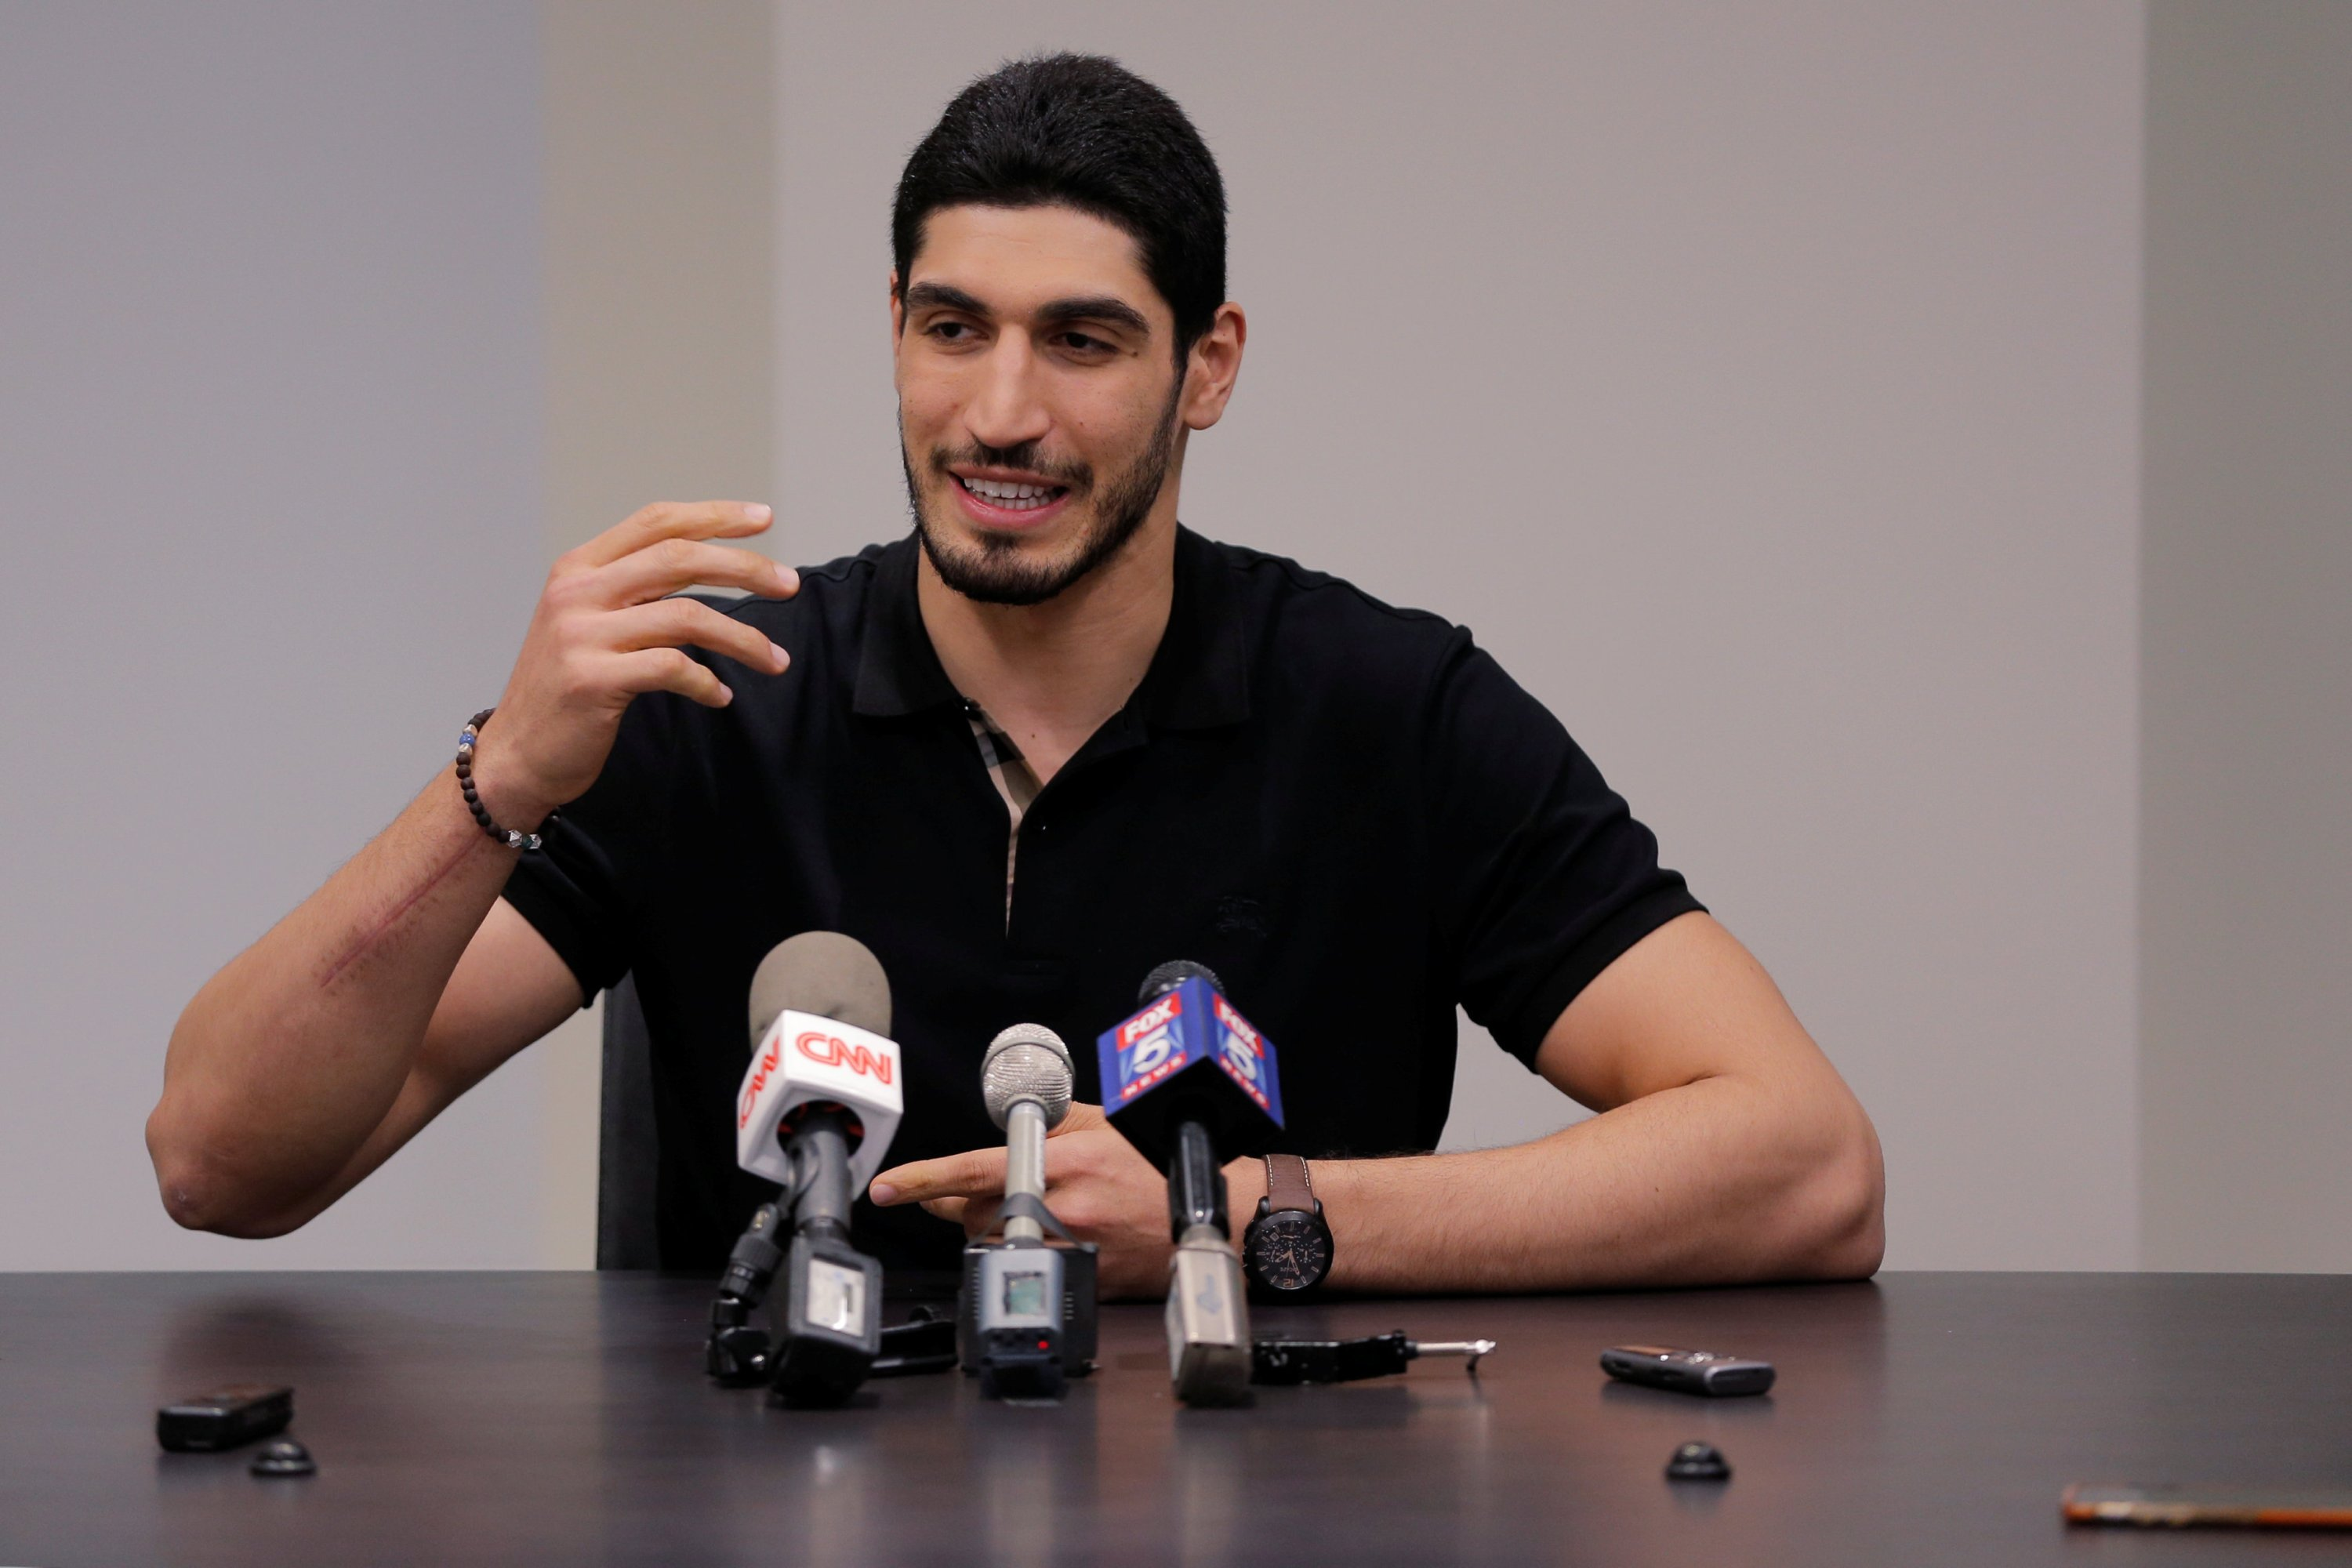 Turkish NBA player Enes Kanter speaks about the revocation of his Turkish passport and his return to the United States at the National Basketball Players Association headquarters in New York, U.S., May 22, 2017. (Reuters Photo)